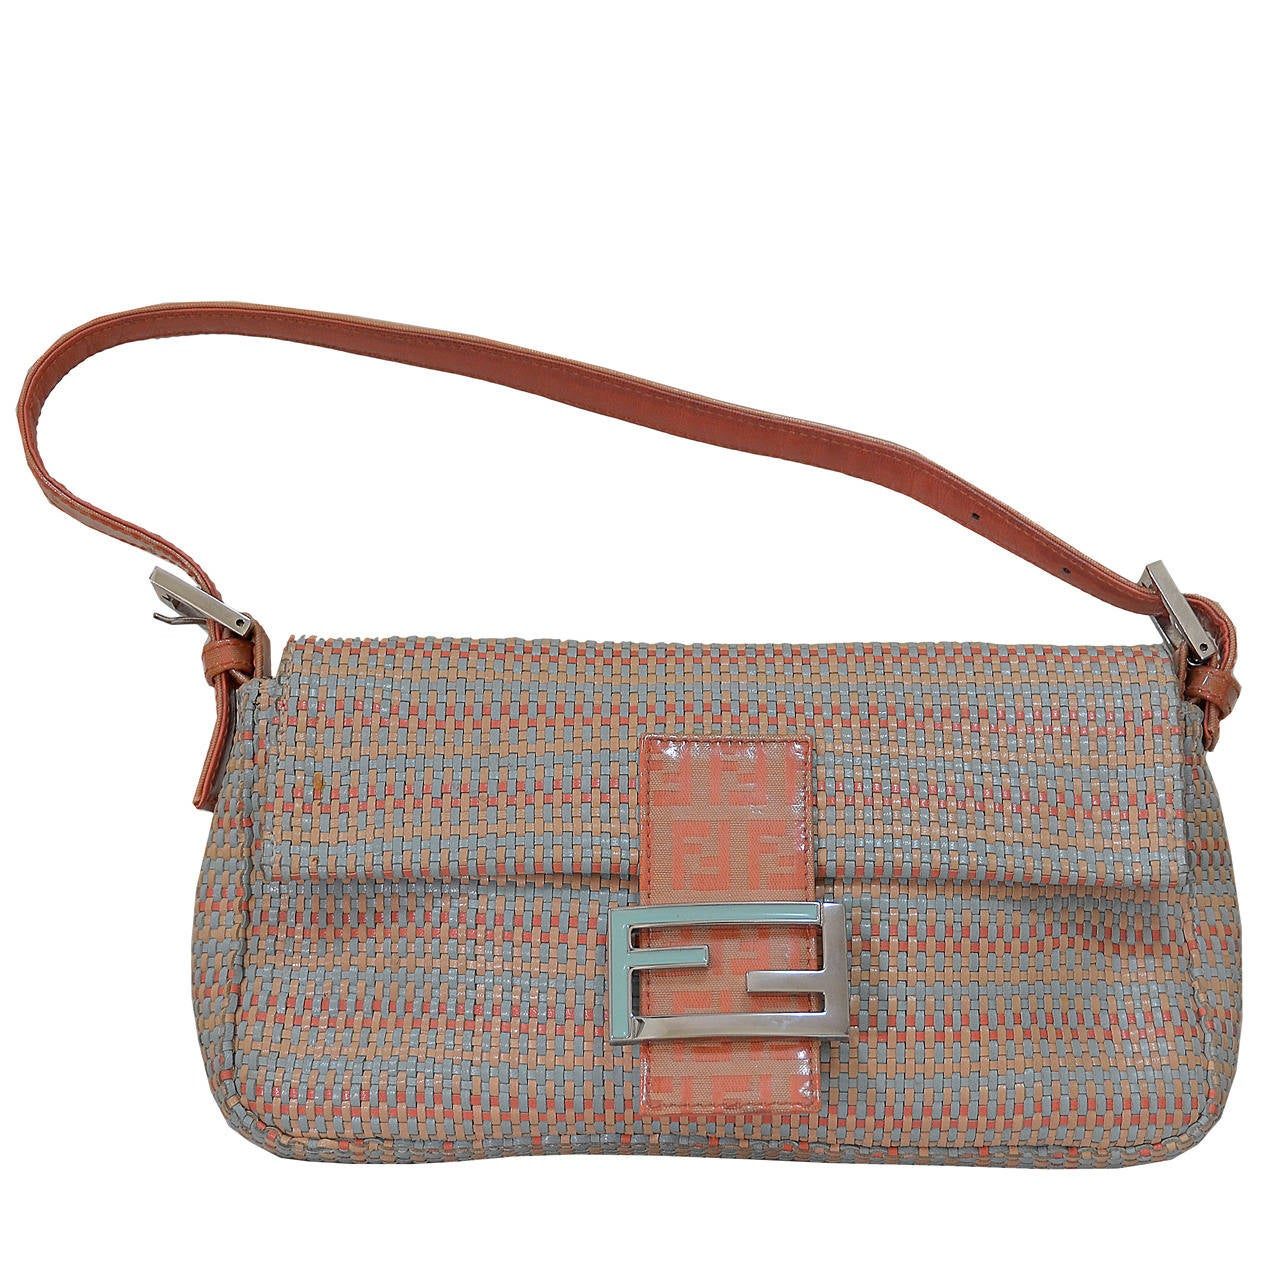 679657e2f98f Beautiful Fendi Woven Leather Baguette Bag For Sale at 1stdibs